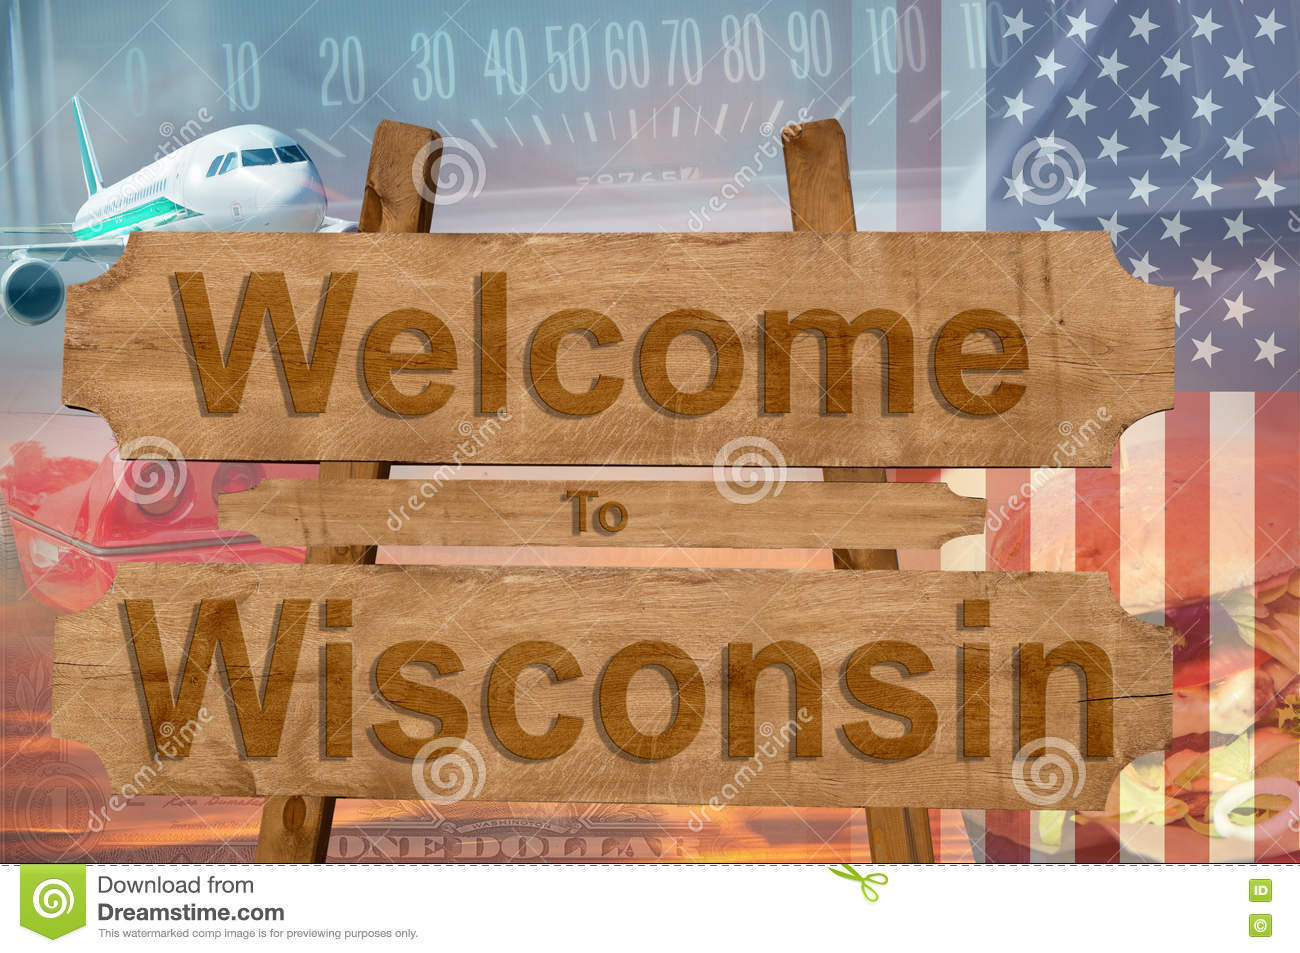 Welcome to Wisconsin state in USA sign on wood, travell theme